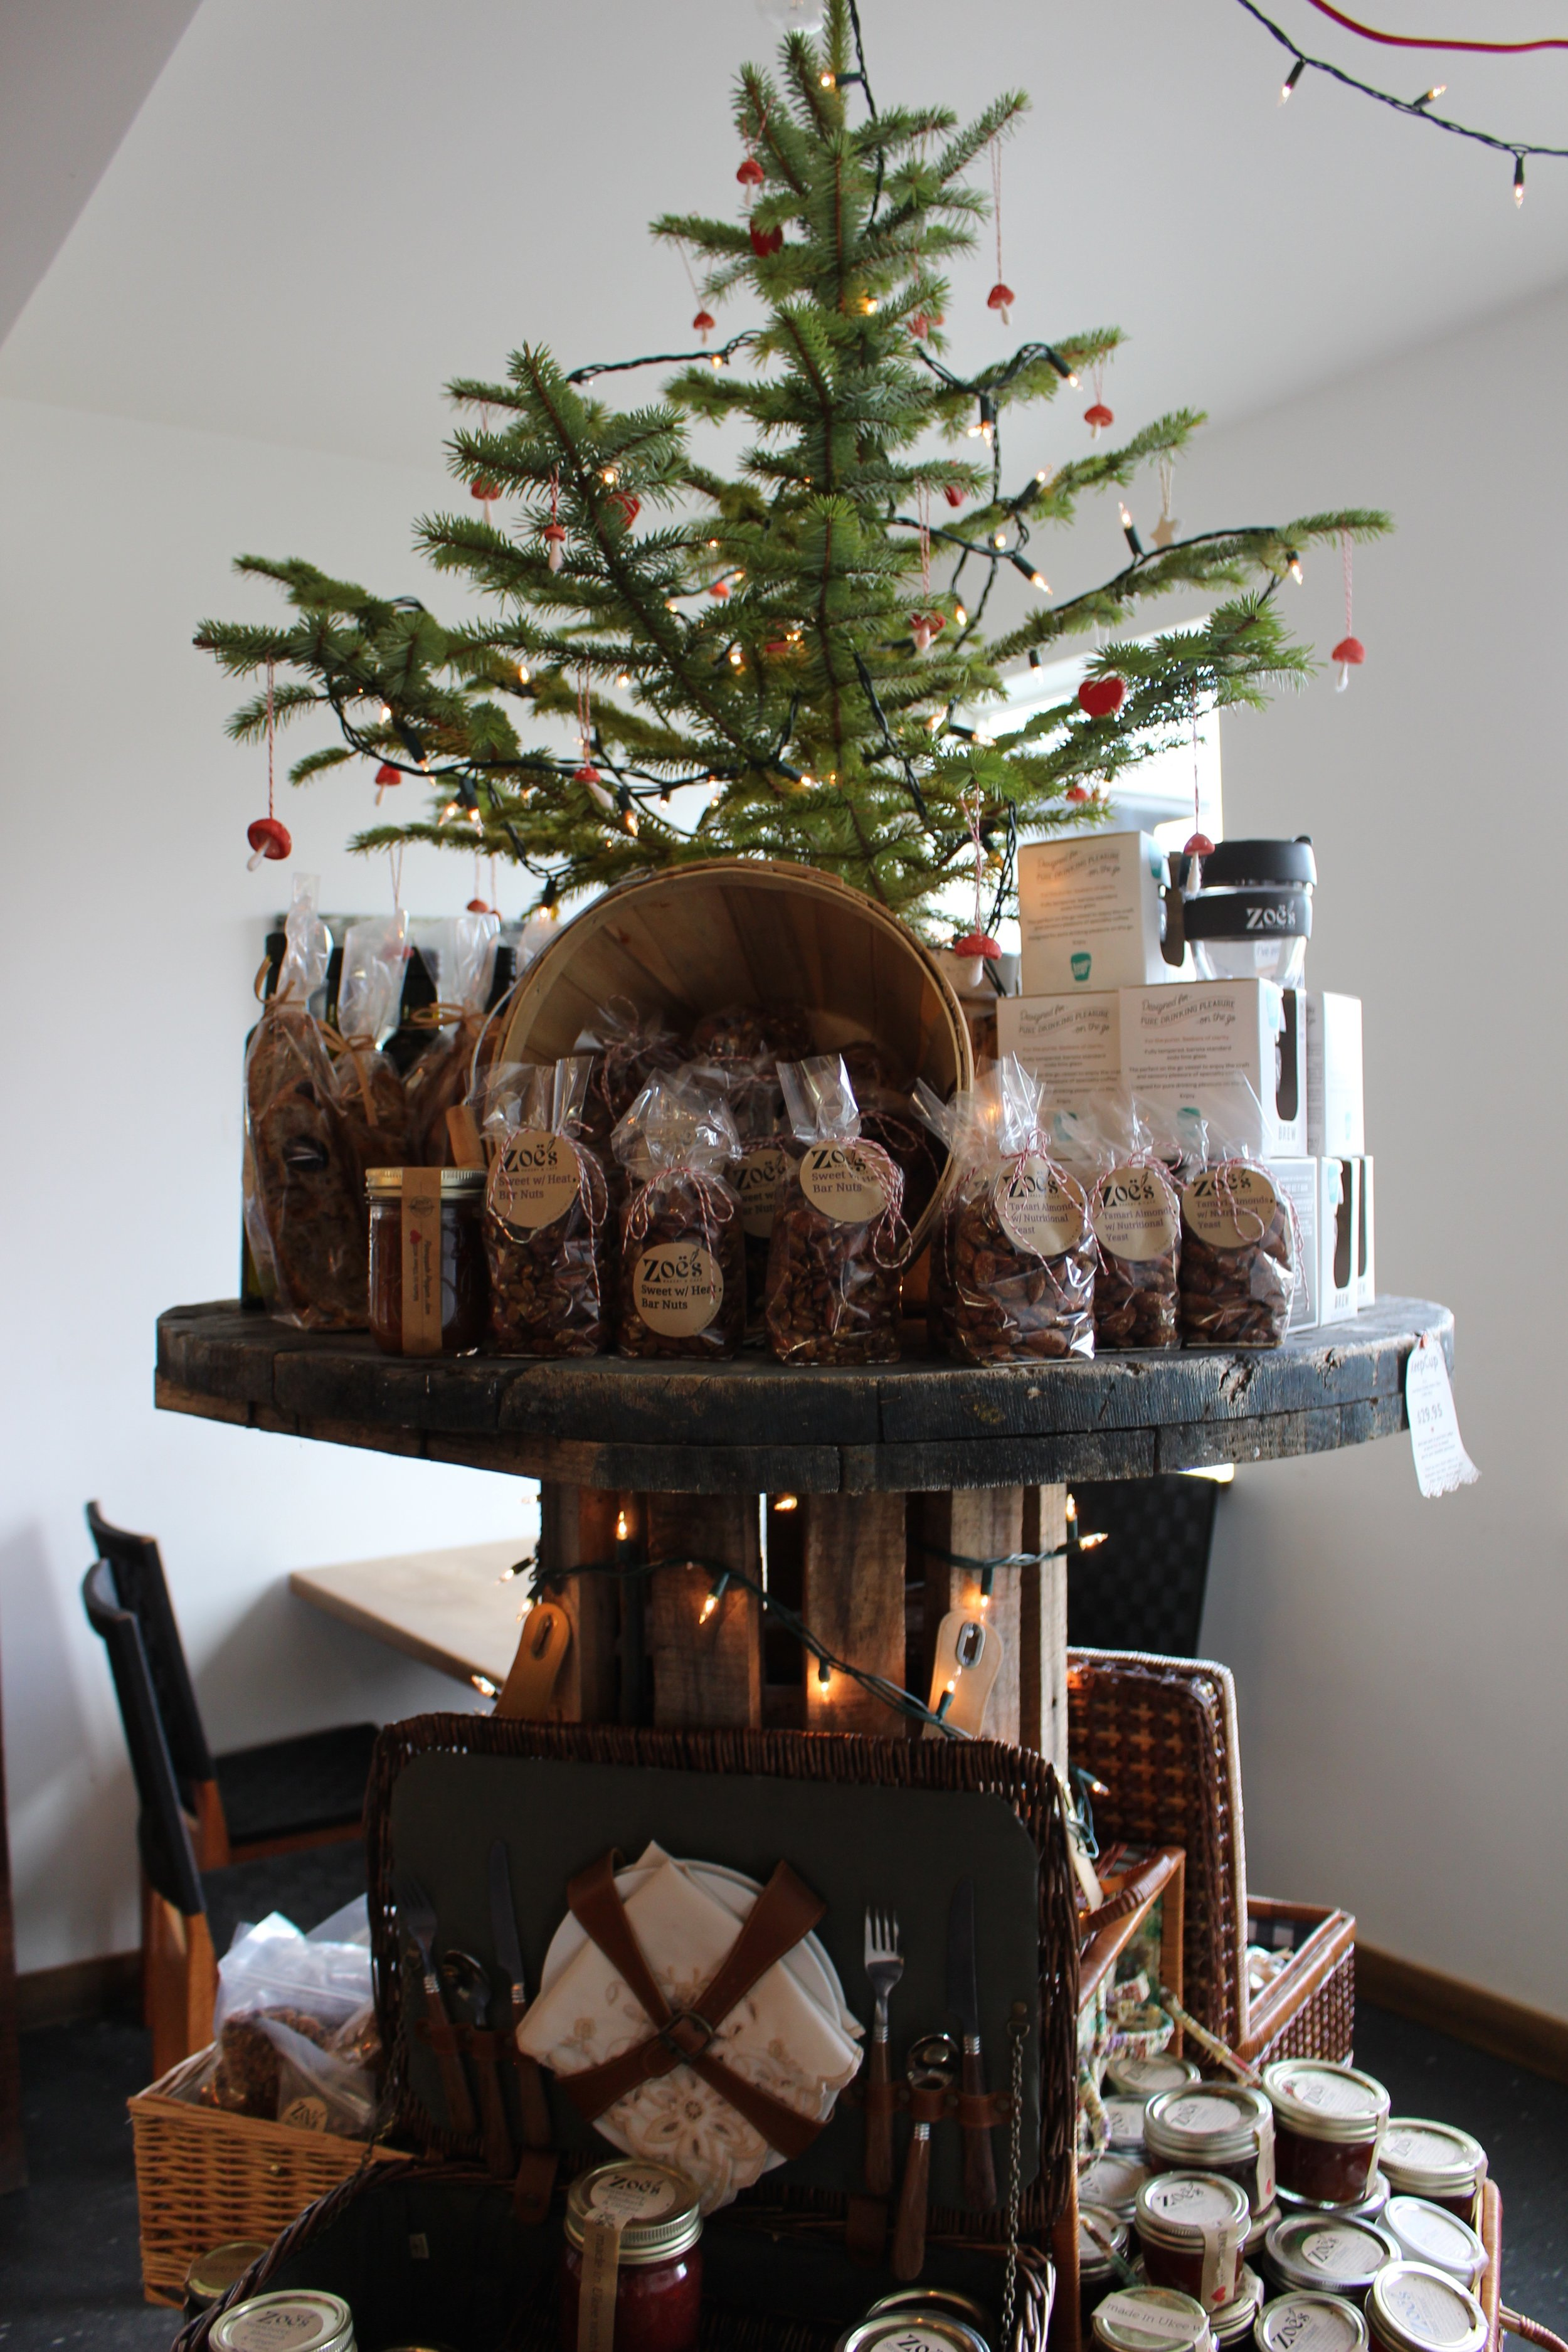 A beautiful Christmas display with ideas for stocking stuffers